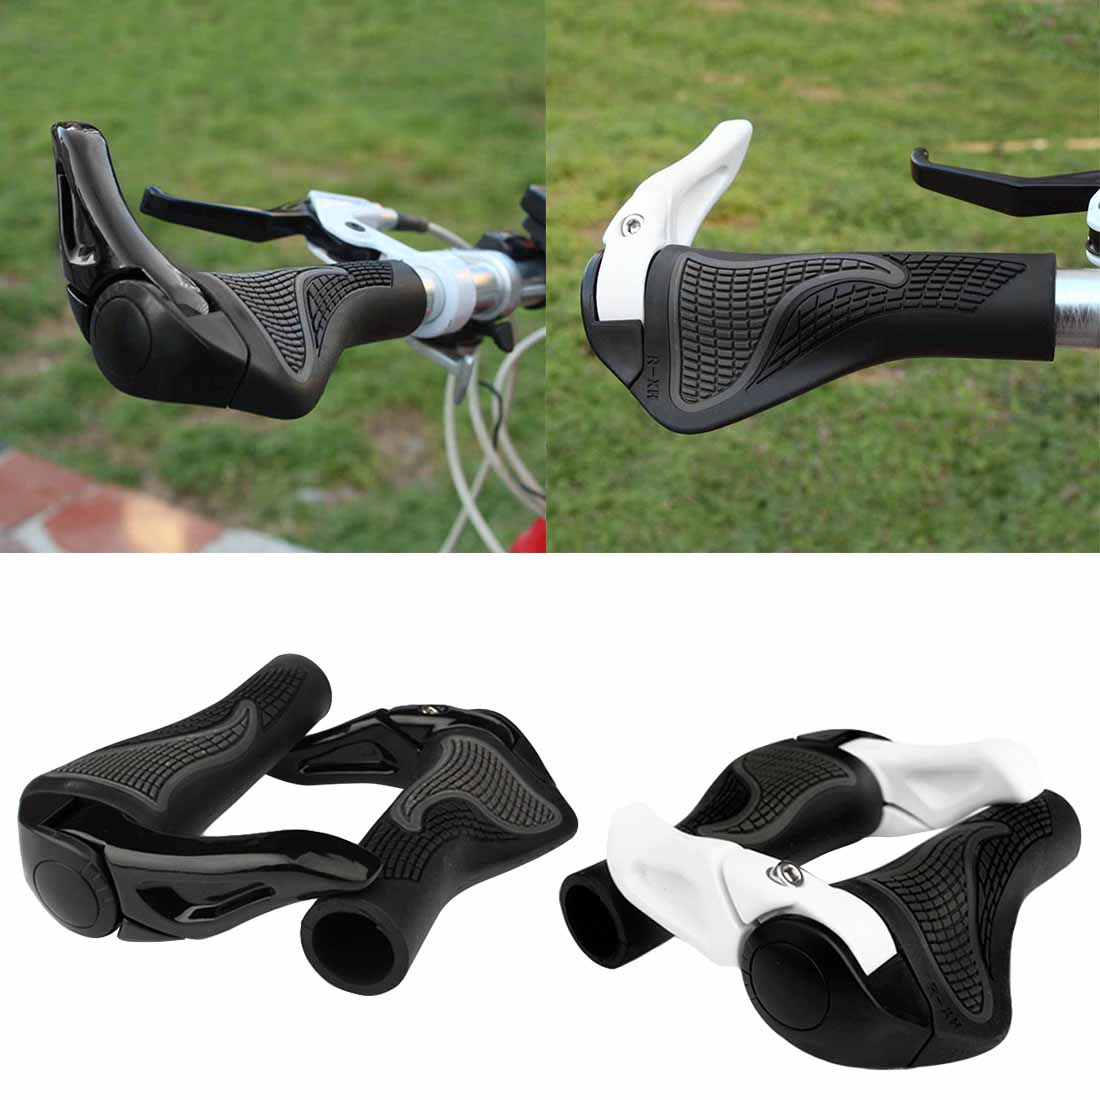 Hot Bike Components Bar Ends Handlebars Rubber Grips Bicycle Aluminum Barend Handle Bar Ergonomic Push On Soft Grips